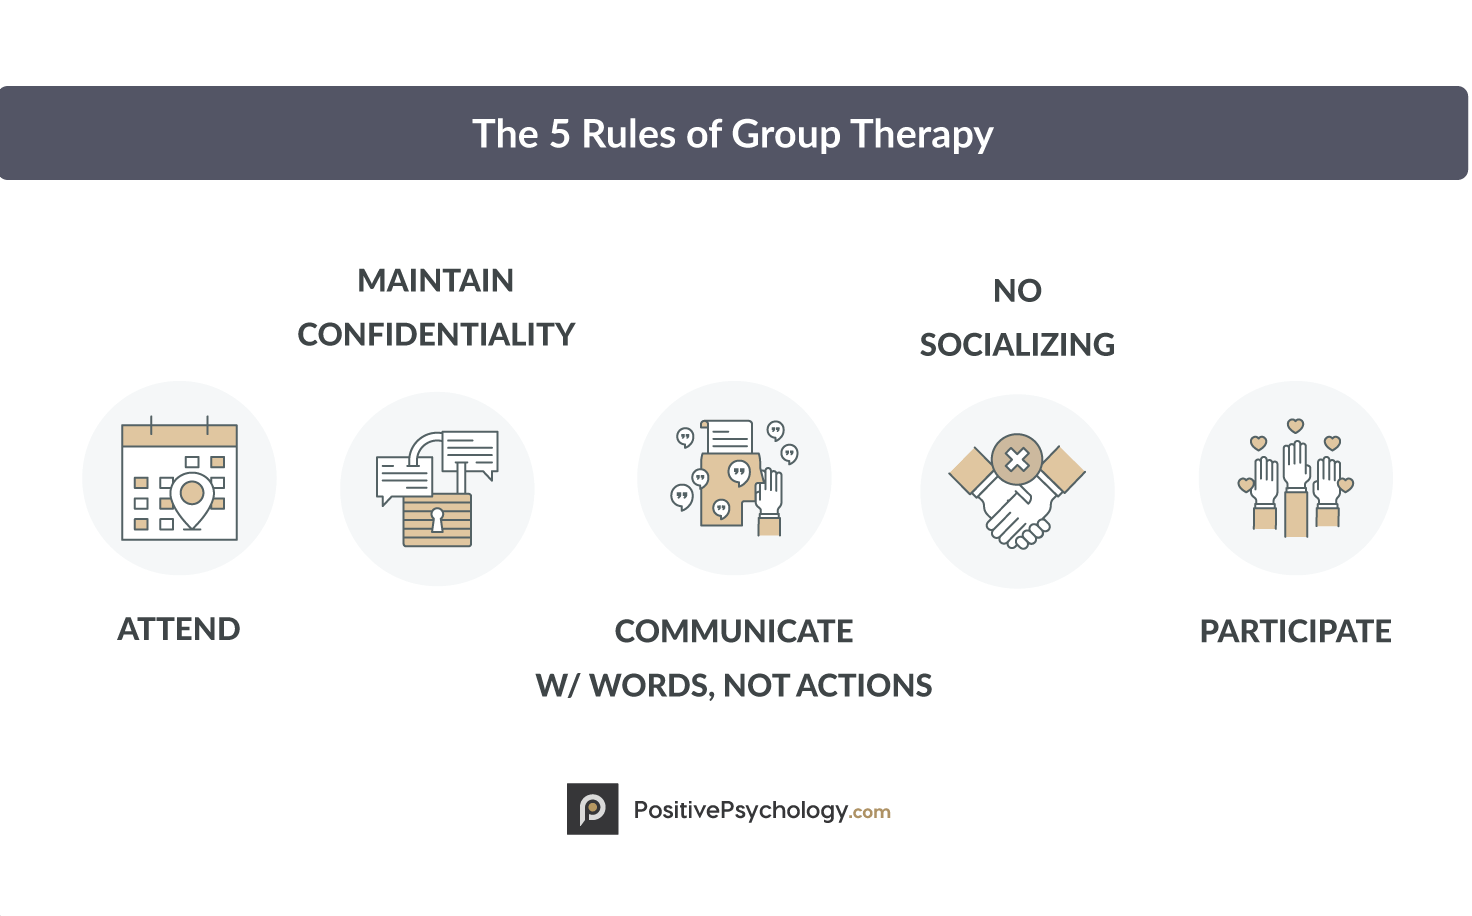 The 5 Rules of Group Therapy